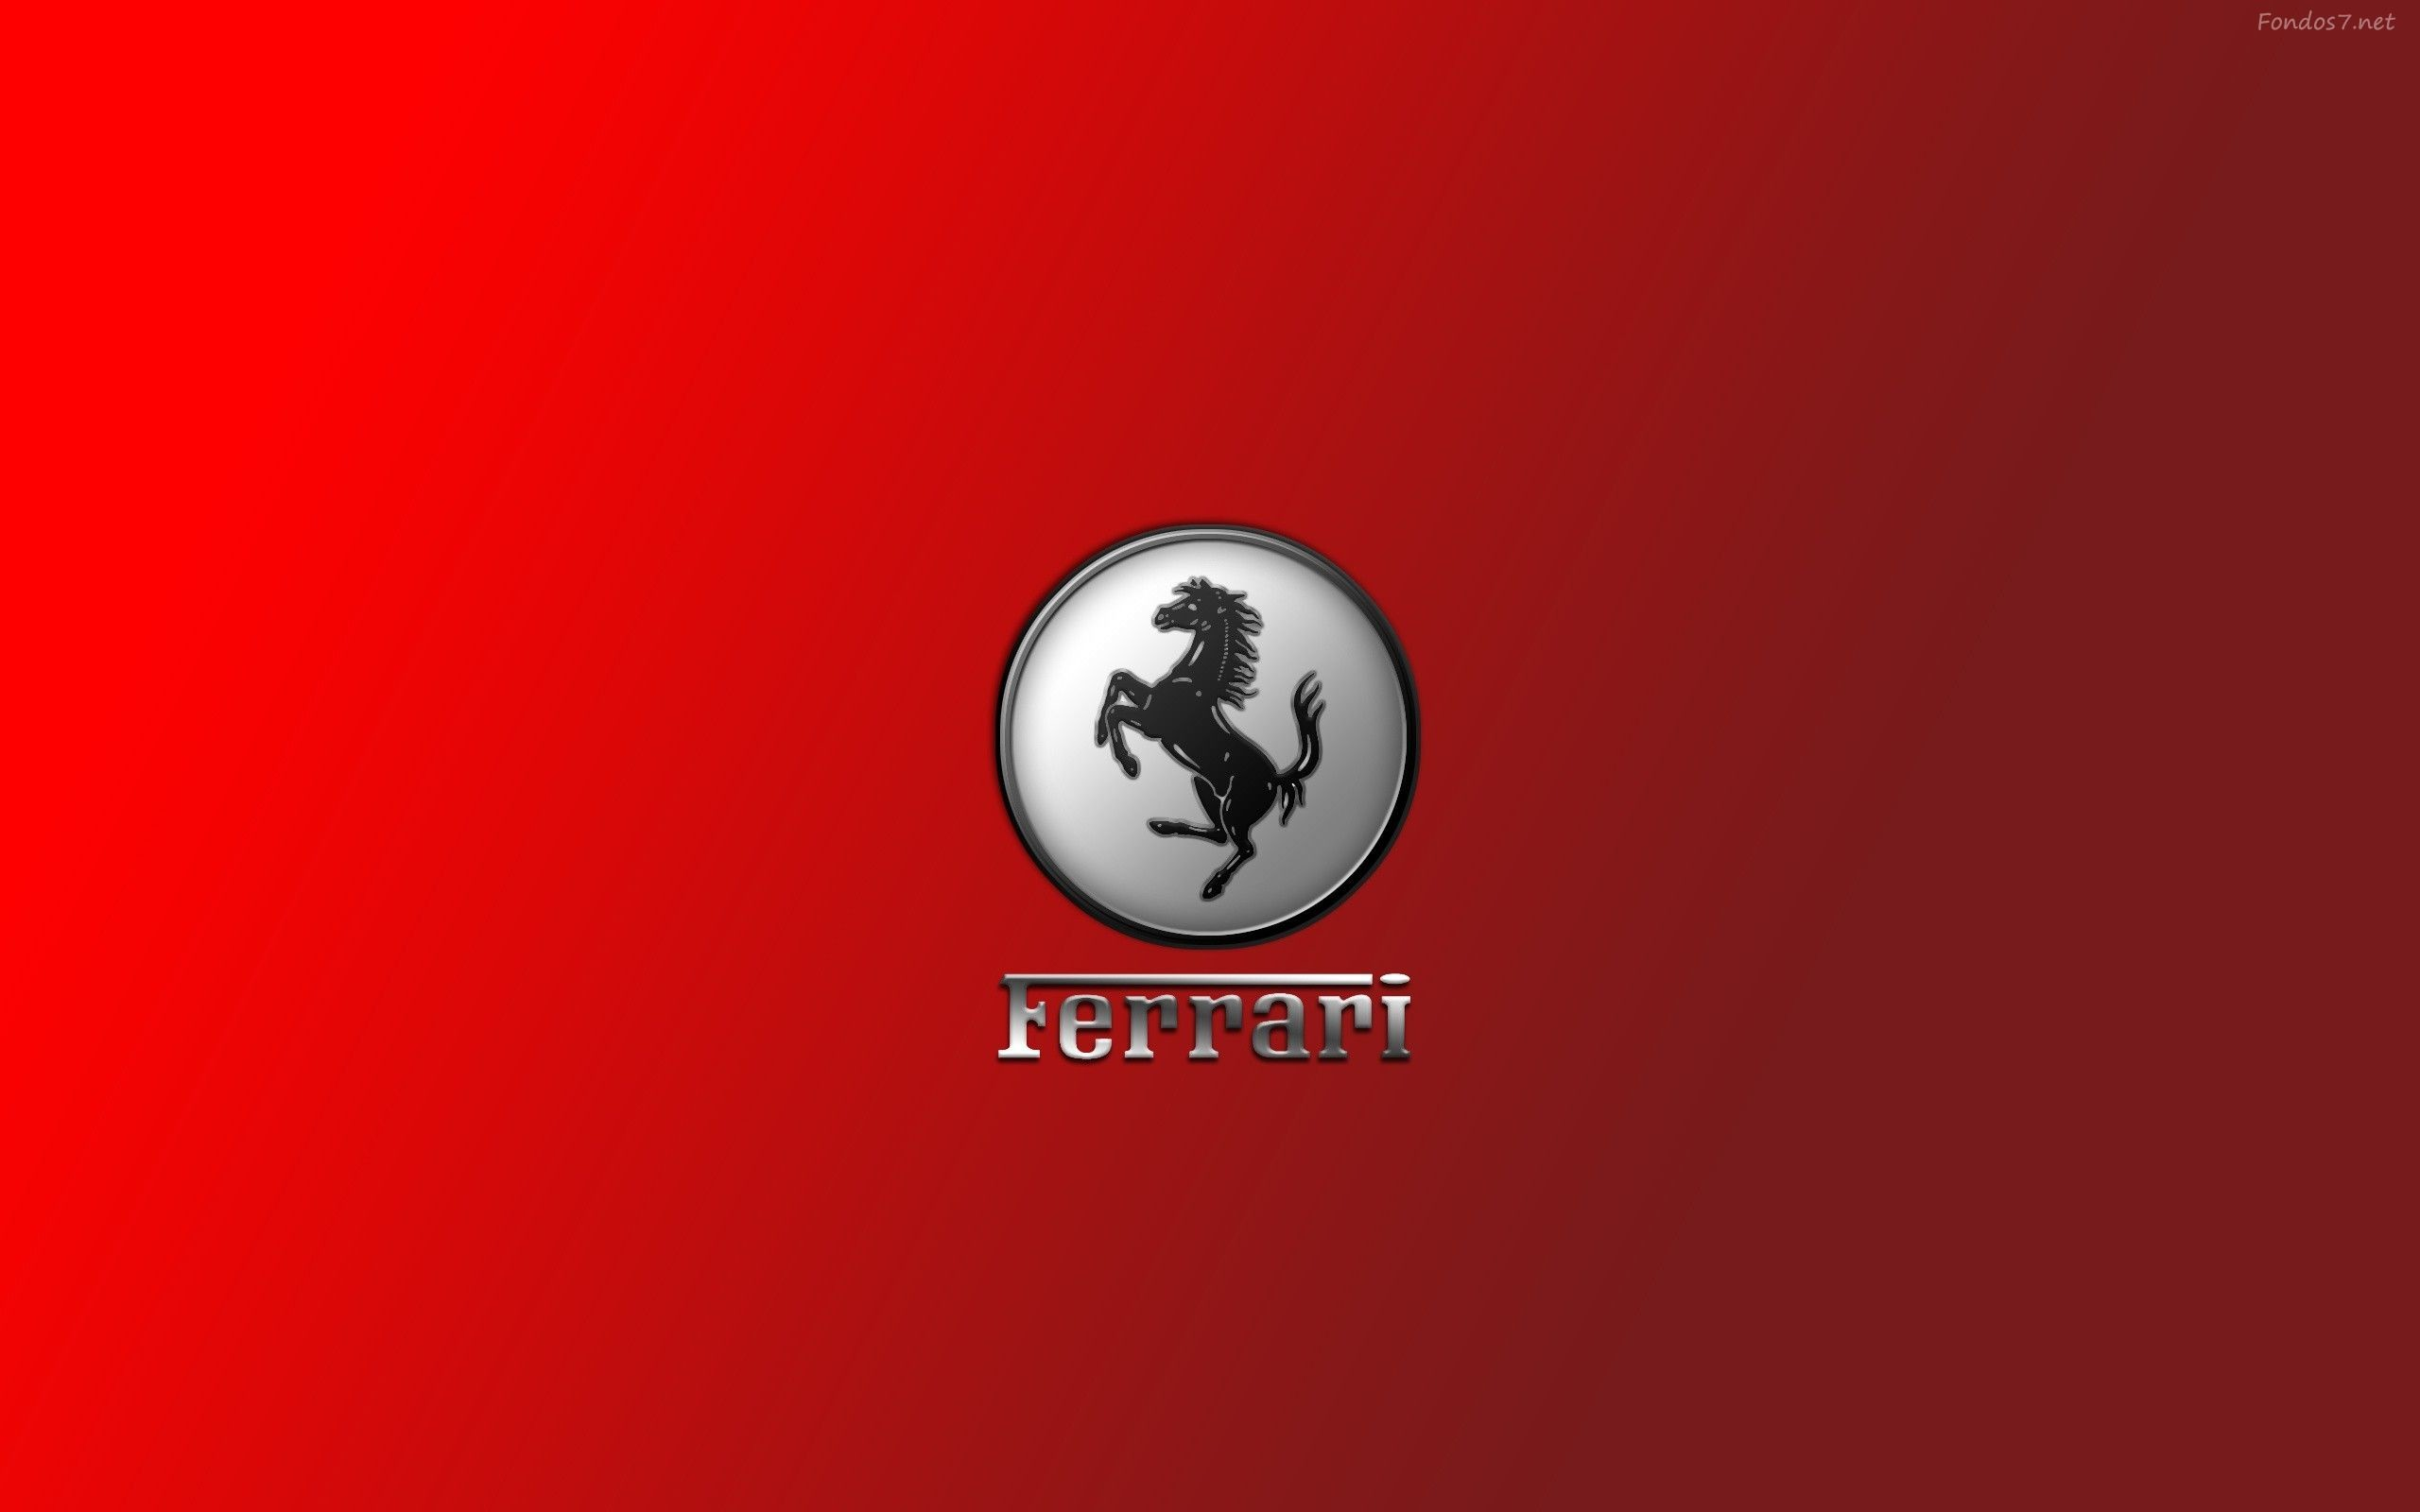 2560x1600 Ferrari Wallpapers Logo Hd | Vehicles Wallpapers | Pinterest | Ferrari and  Ferrari logo